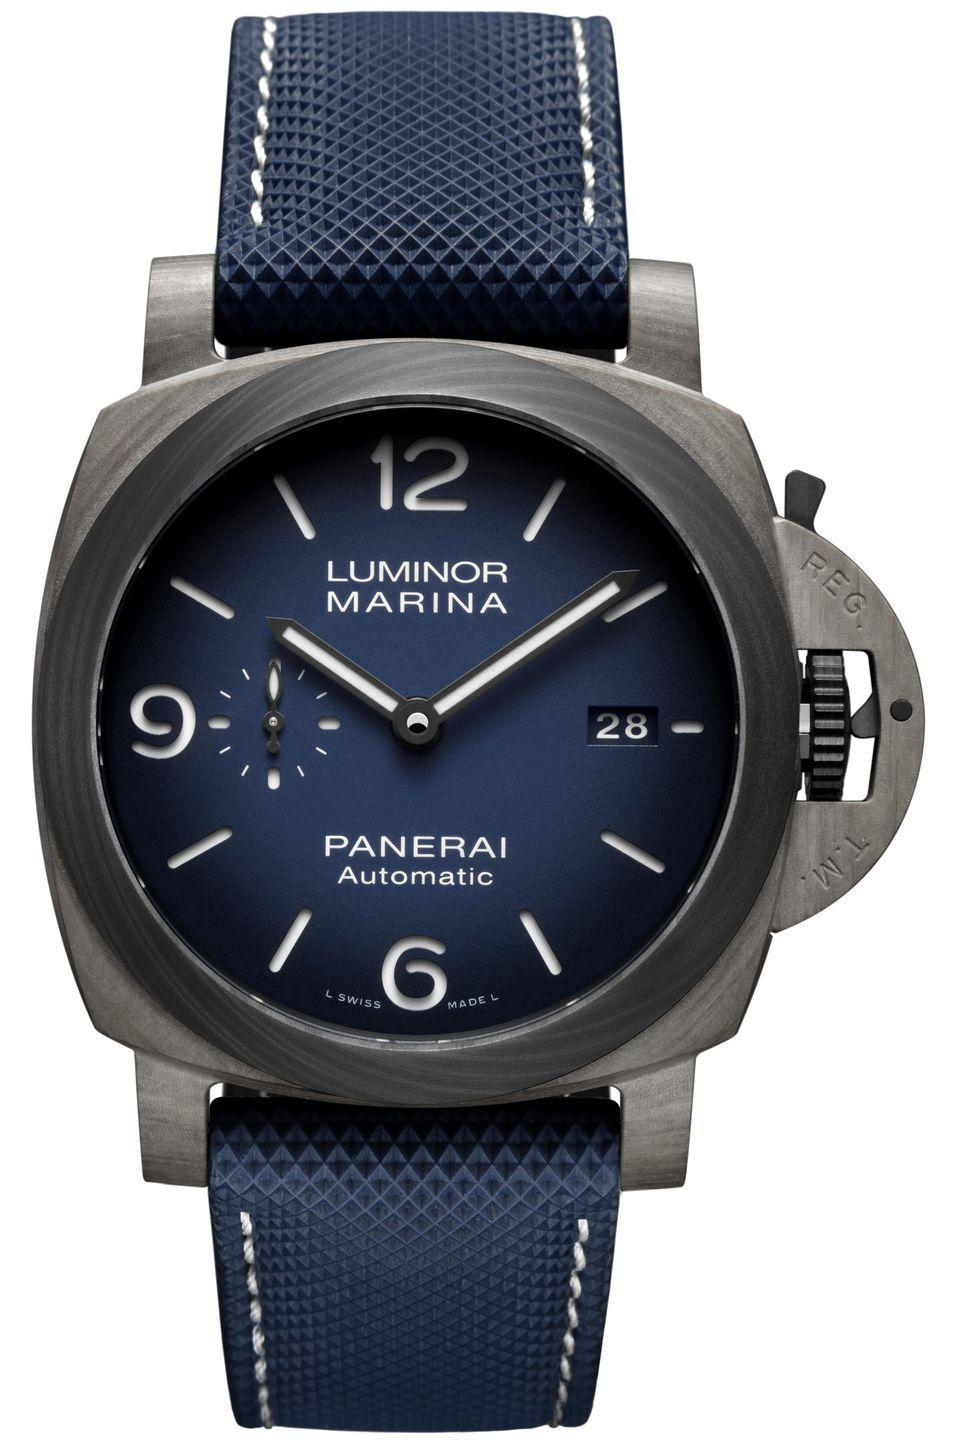 "<p>Panerai has pioneered a new superpower material in watches: Fibertech™, which was unveiled in the Luminor Marina 44 MM. The composite, made from mineral fibers produced by the fusion of basalt rock and bound with polymers, is 60 percent lighter than steel, extremely resilient, and resistant to corrosion. Tested in the aerospace industry, it's proven itself able to withstand the toughest conditions.(<em>Price on request)</em></p><p><a class=""link rapid-noclick-resp"" href=""http://panerai.com/"" rel=""nofollow noopener"" target=""_blank"" data-ylk=""slk:Learn More"">Learn More</a><br></p>"